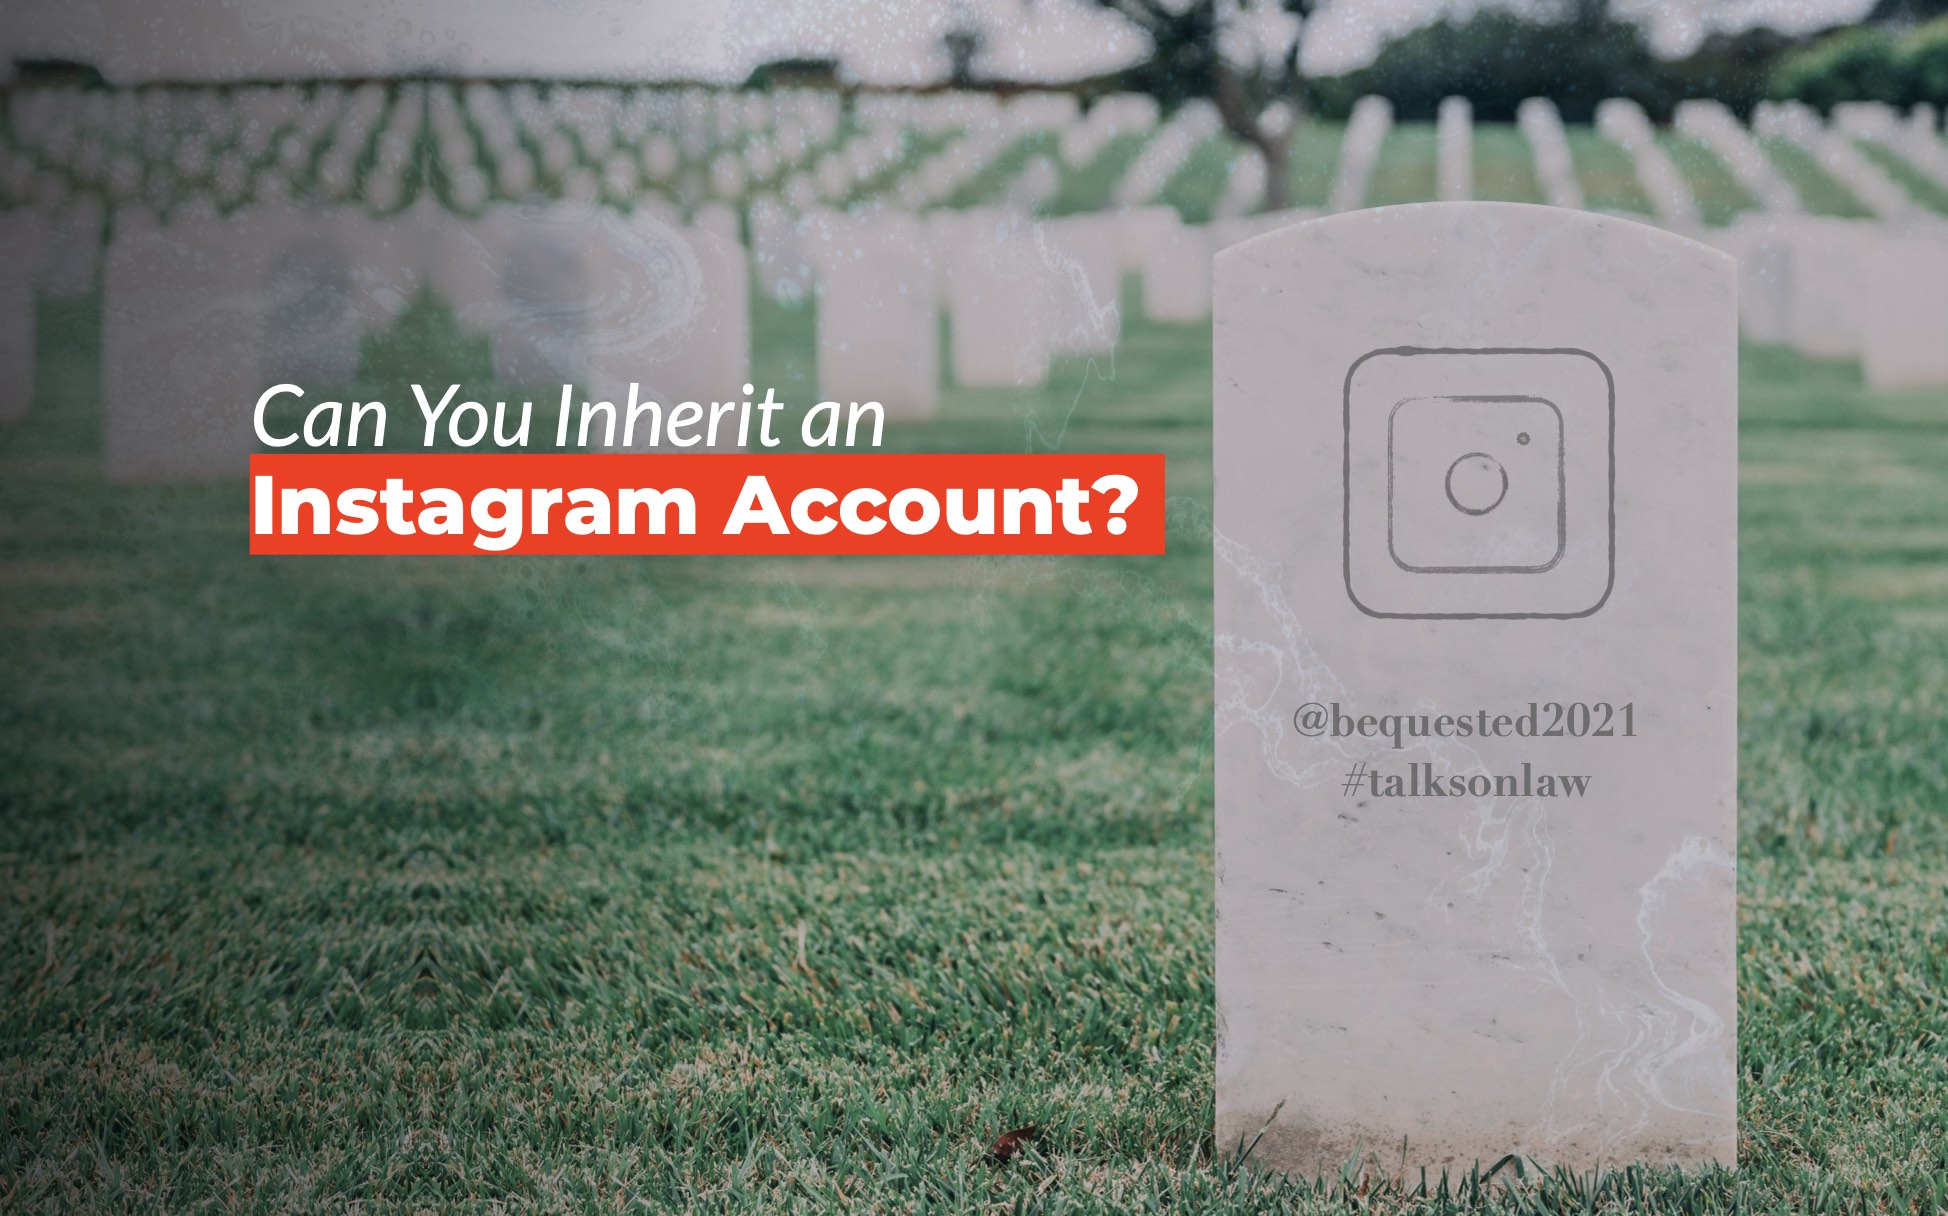 Can You Inherit an Instagram Account?